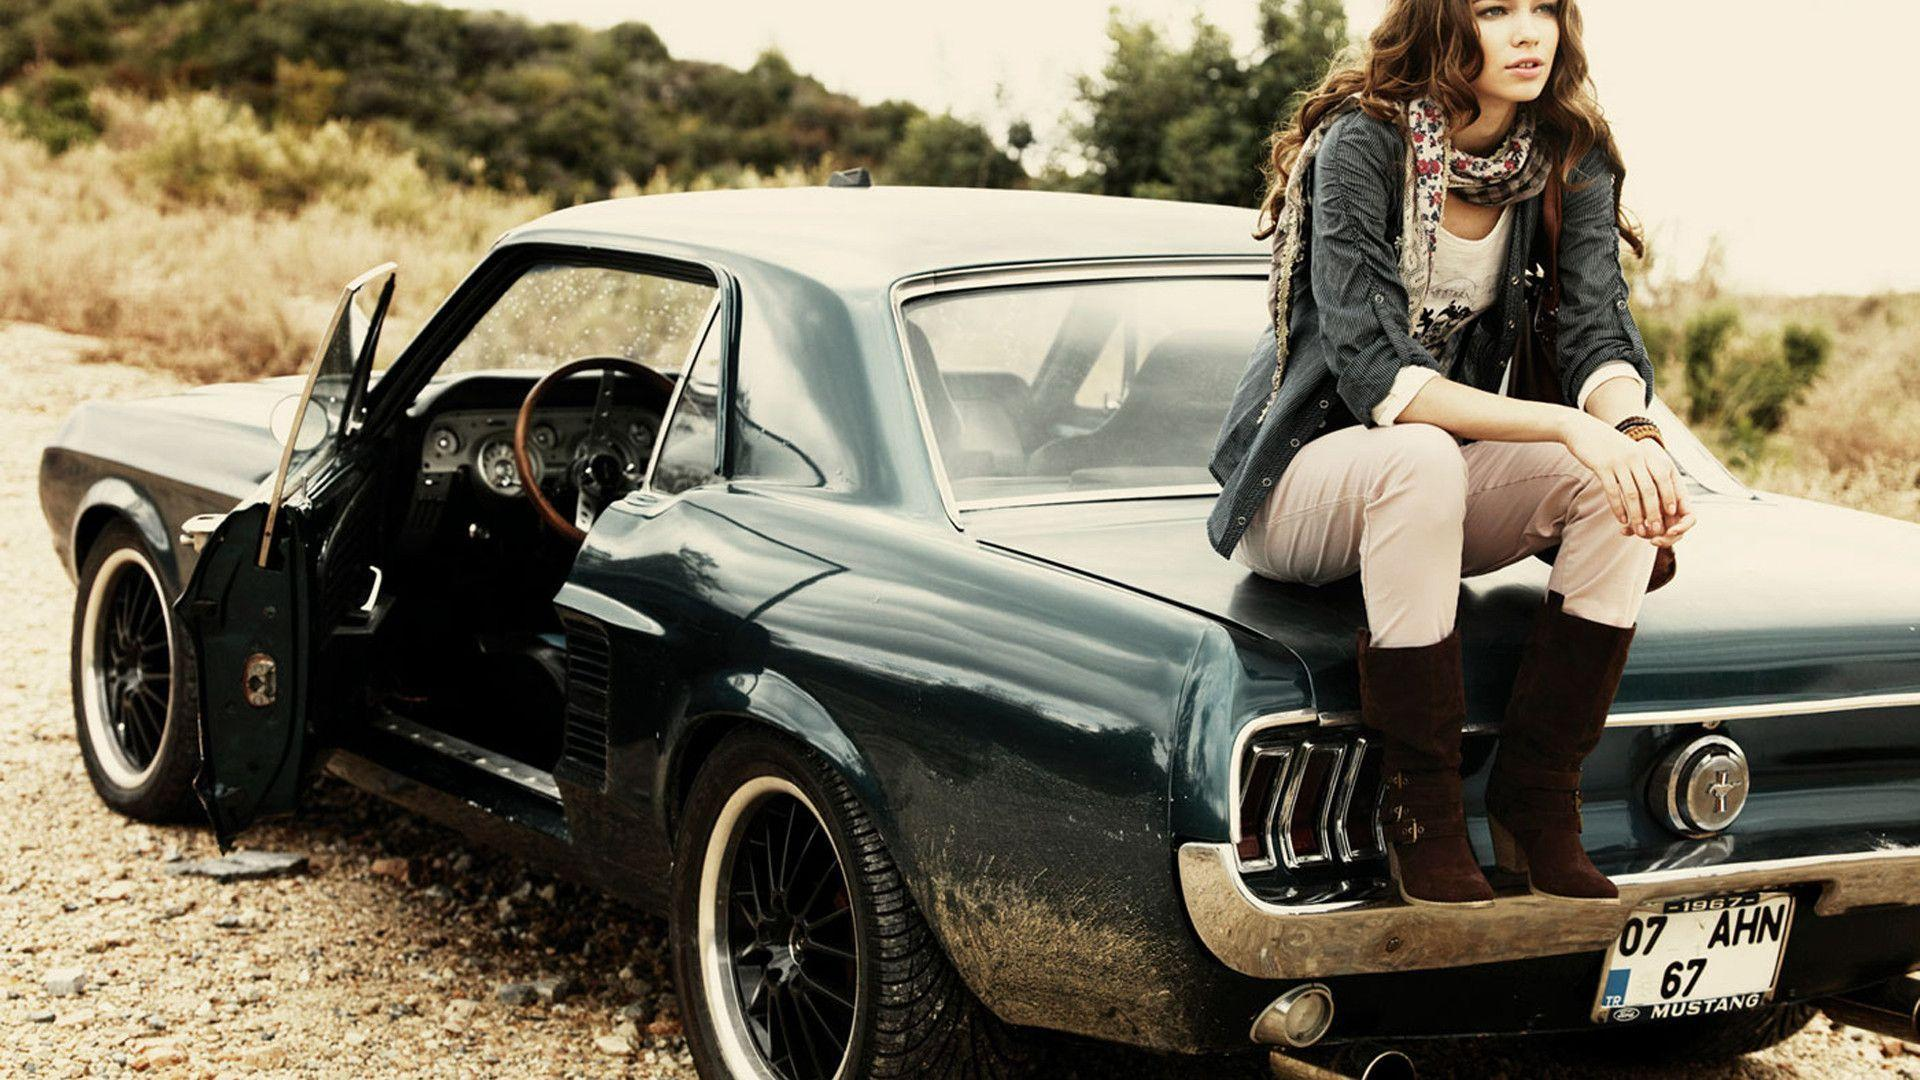 Girl sitting on ford mustang 1967 widescreen wallpaper wide